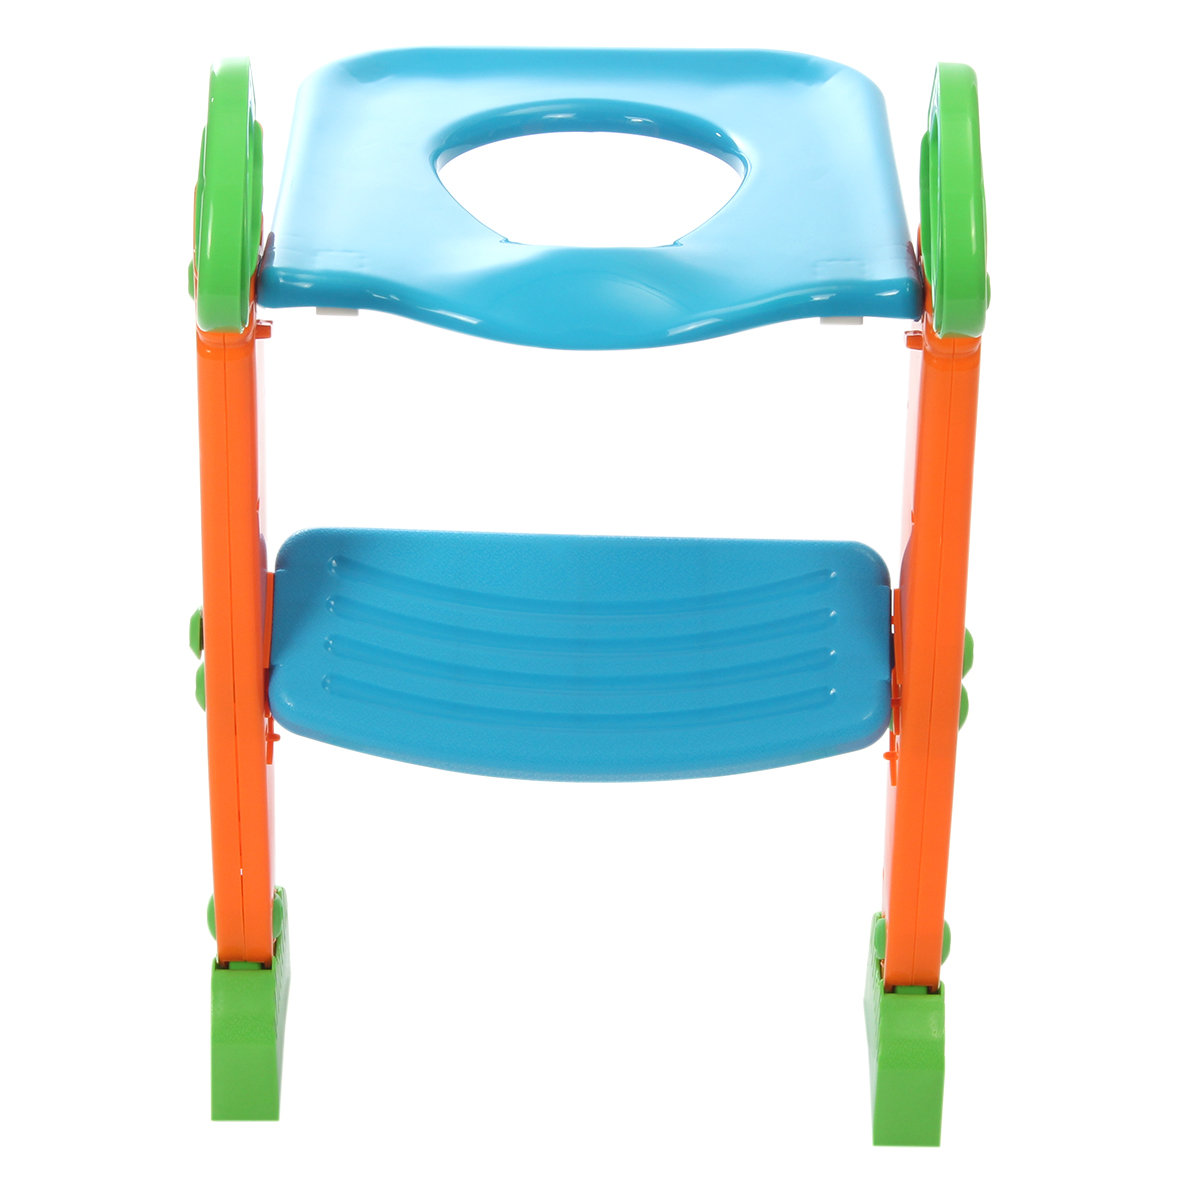 Kids Potty Training Seat with Step Stool Ladder for Child Toddler Toilet Chair - Newchic